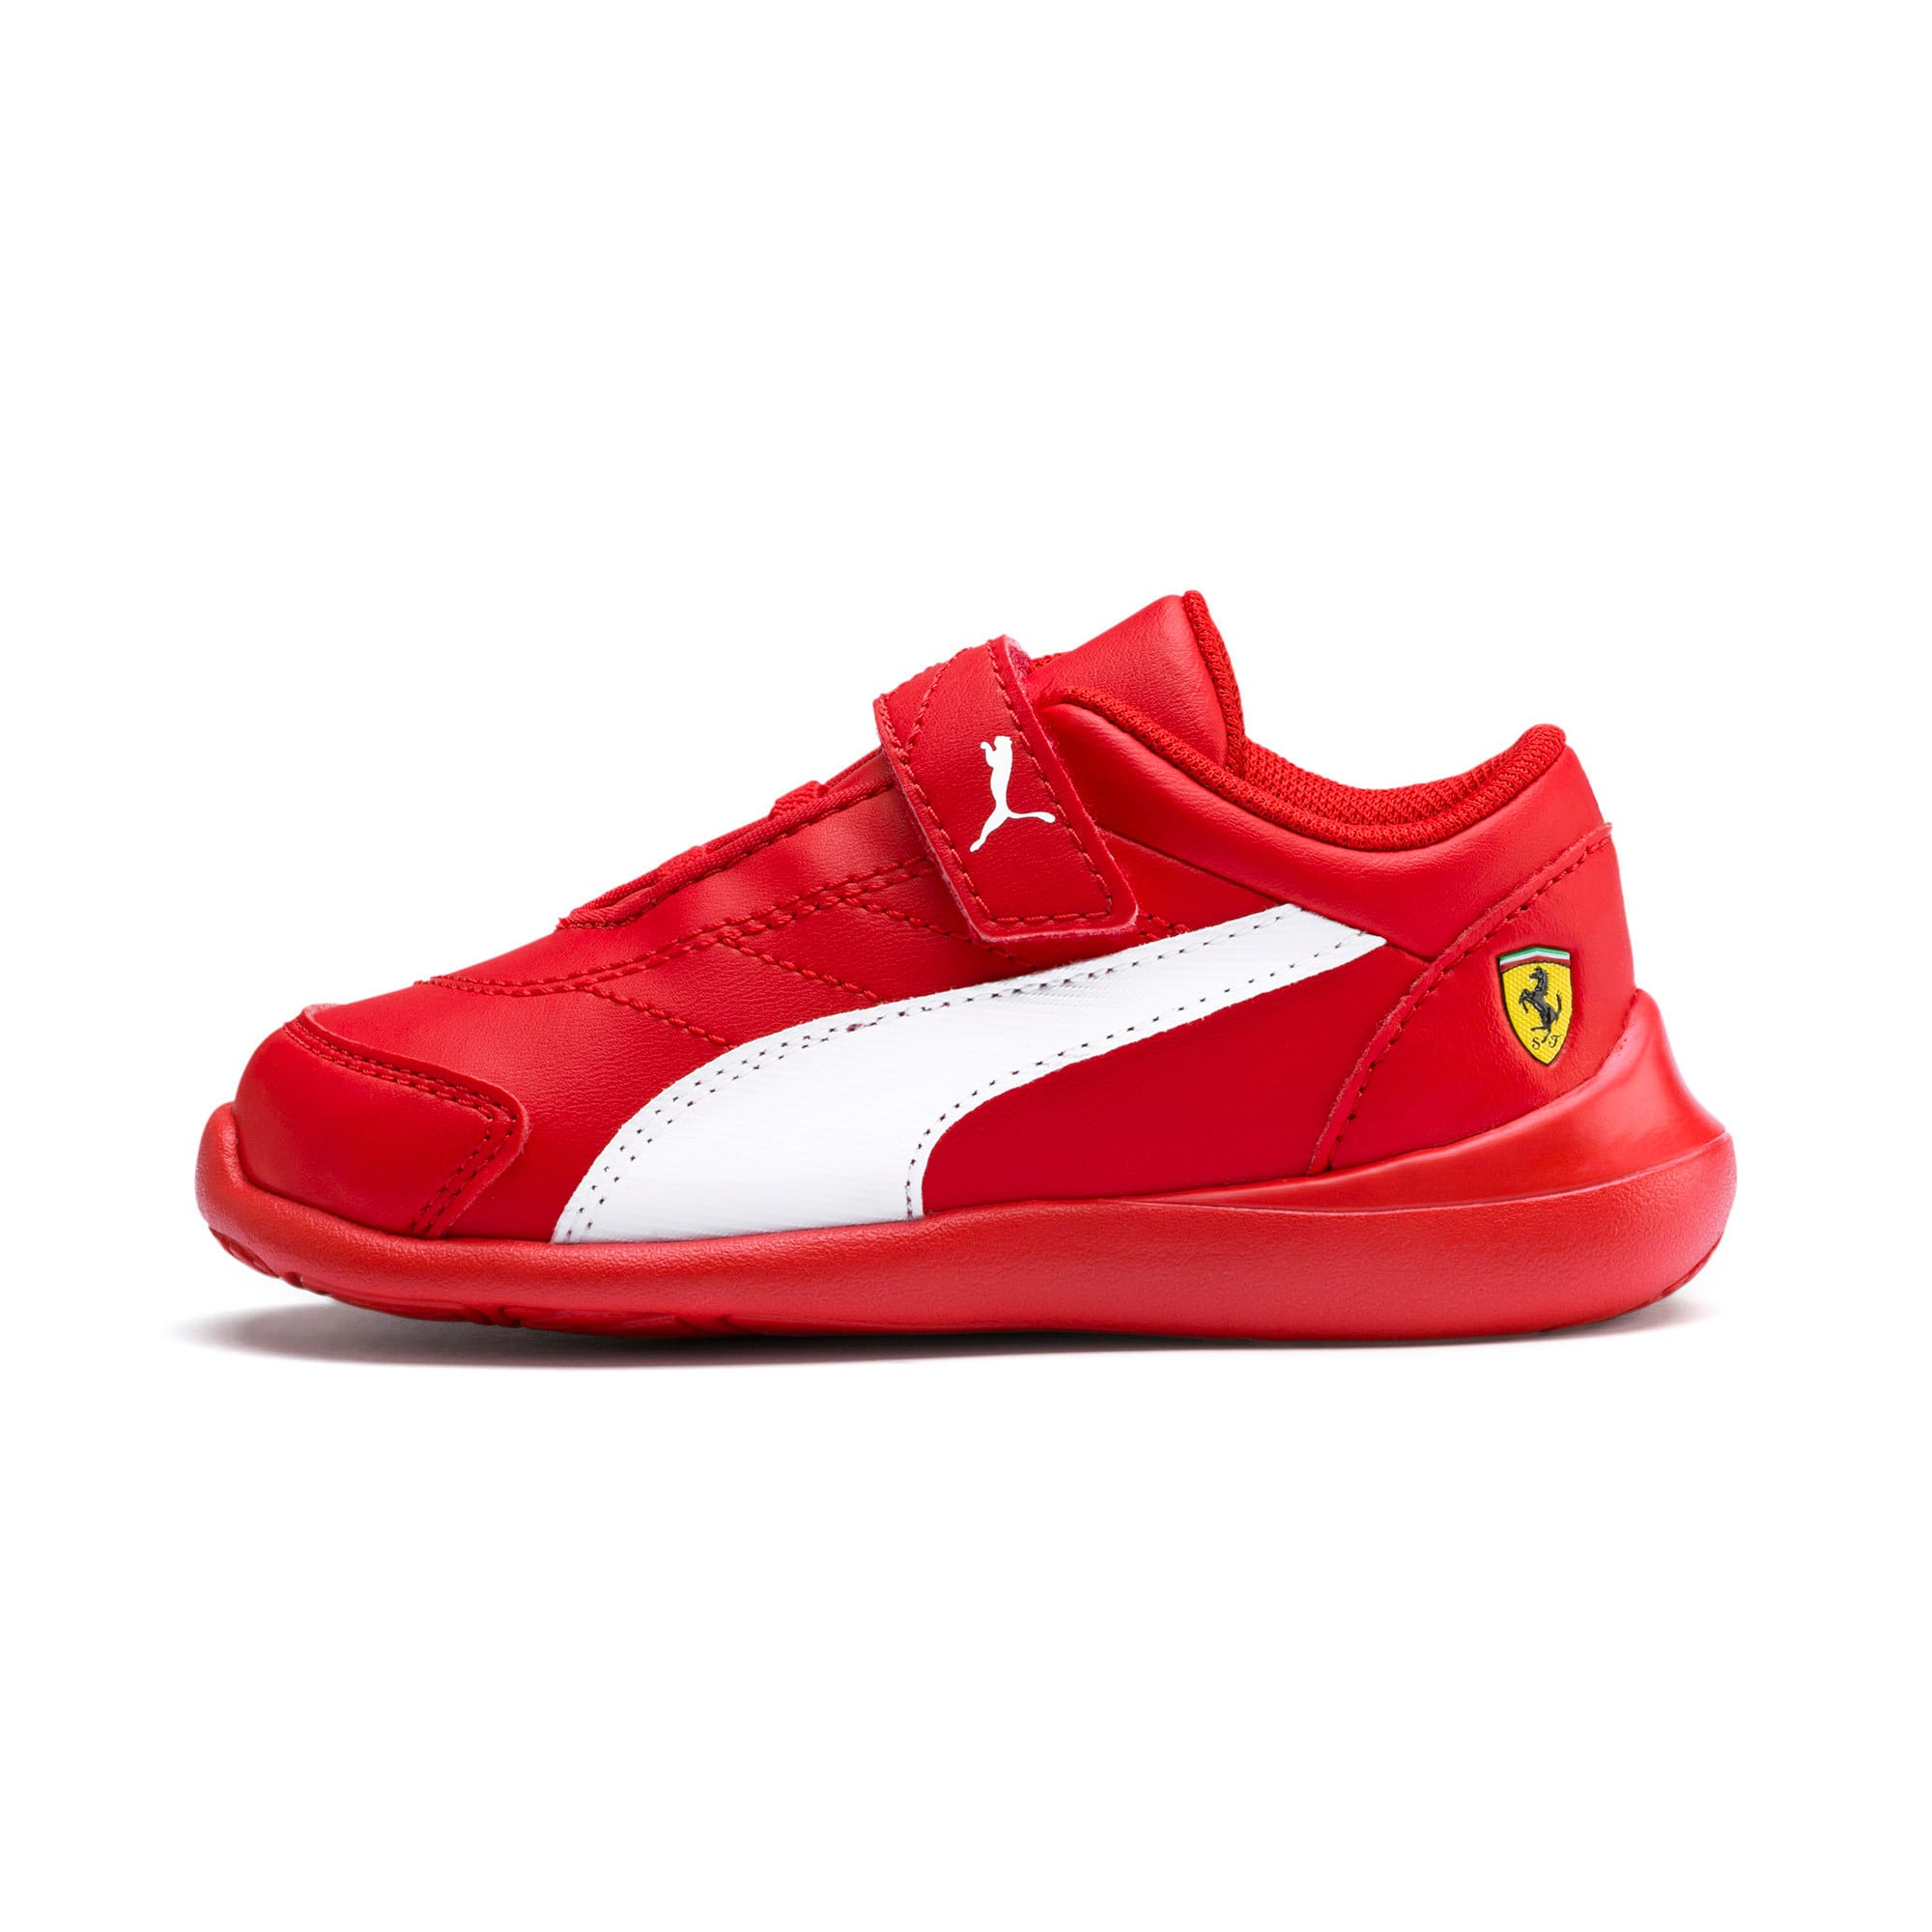 Thumbnail 1 of Scuderia Ferrari Kart Cat III Toddler Shoes, Rosso Corsa-Wht-Rosso Corsa, medium